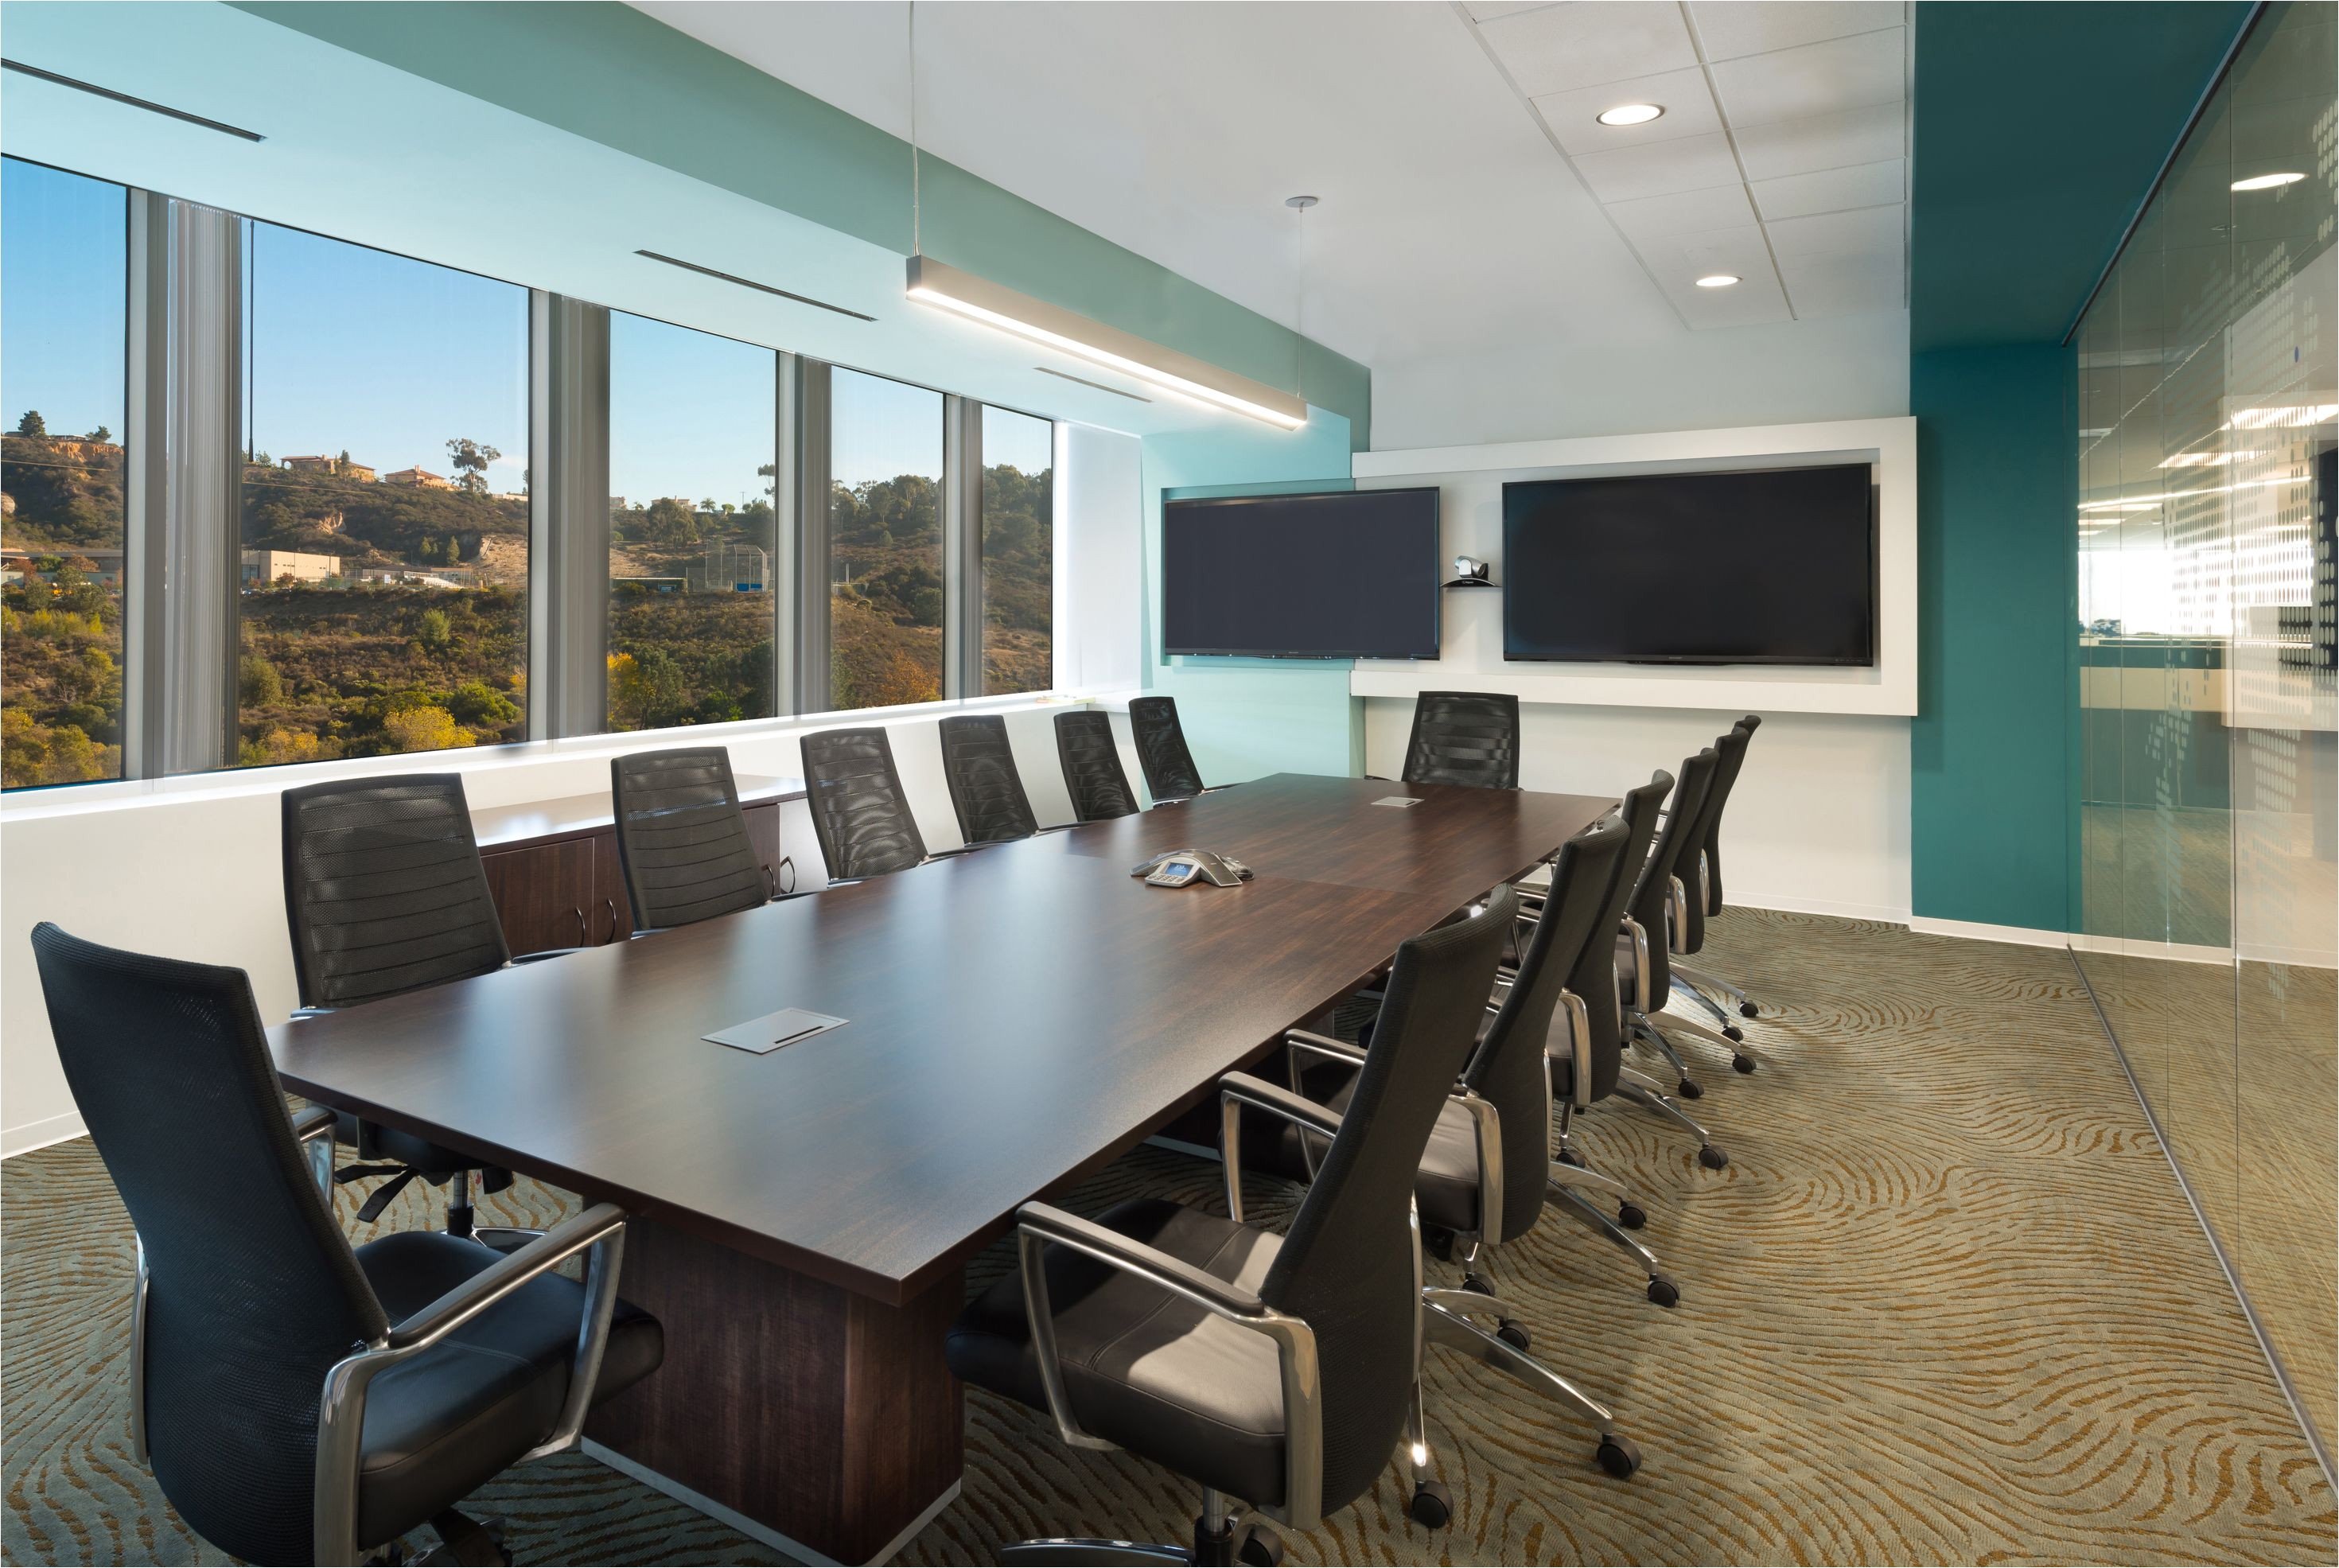 volcano corp in san diego ca largeoffice commercialspaces commercialinteriors design